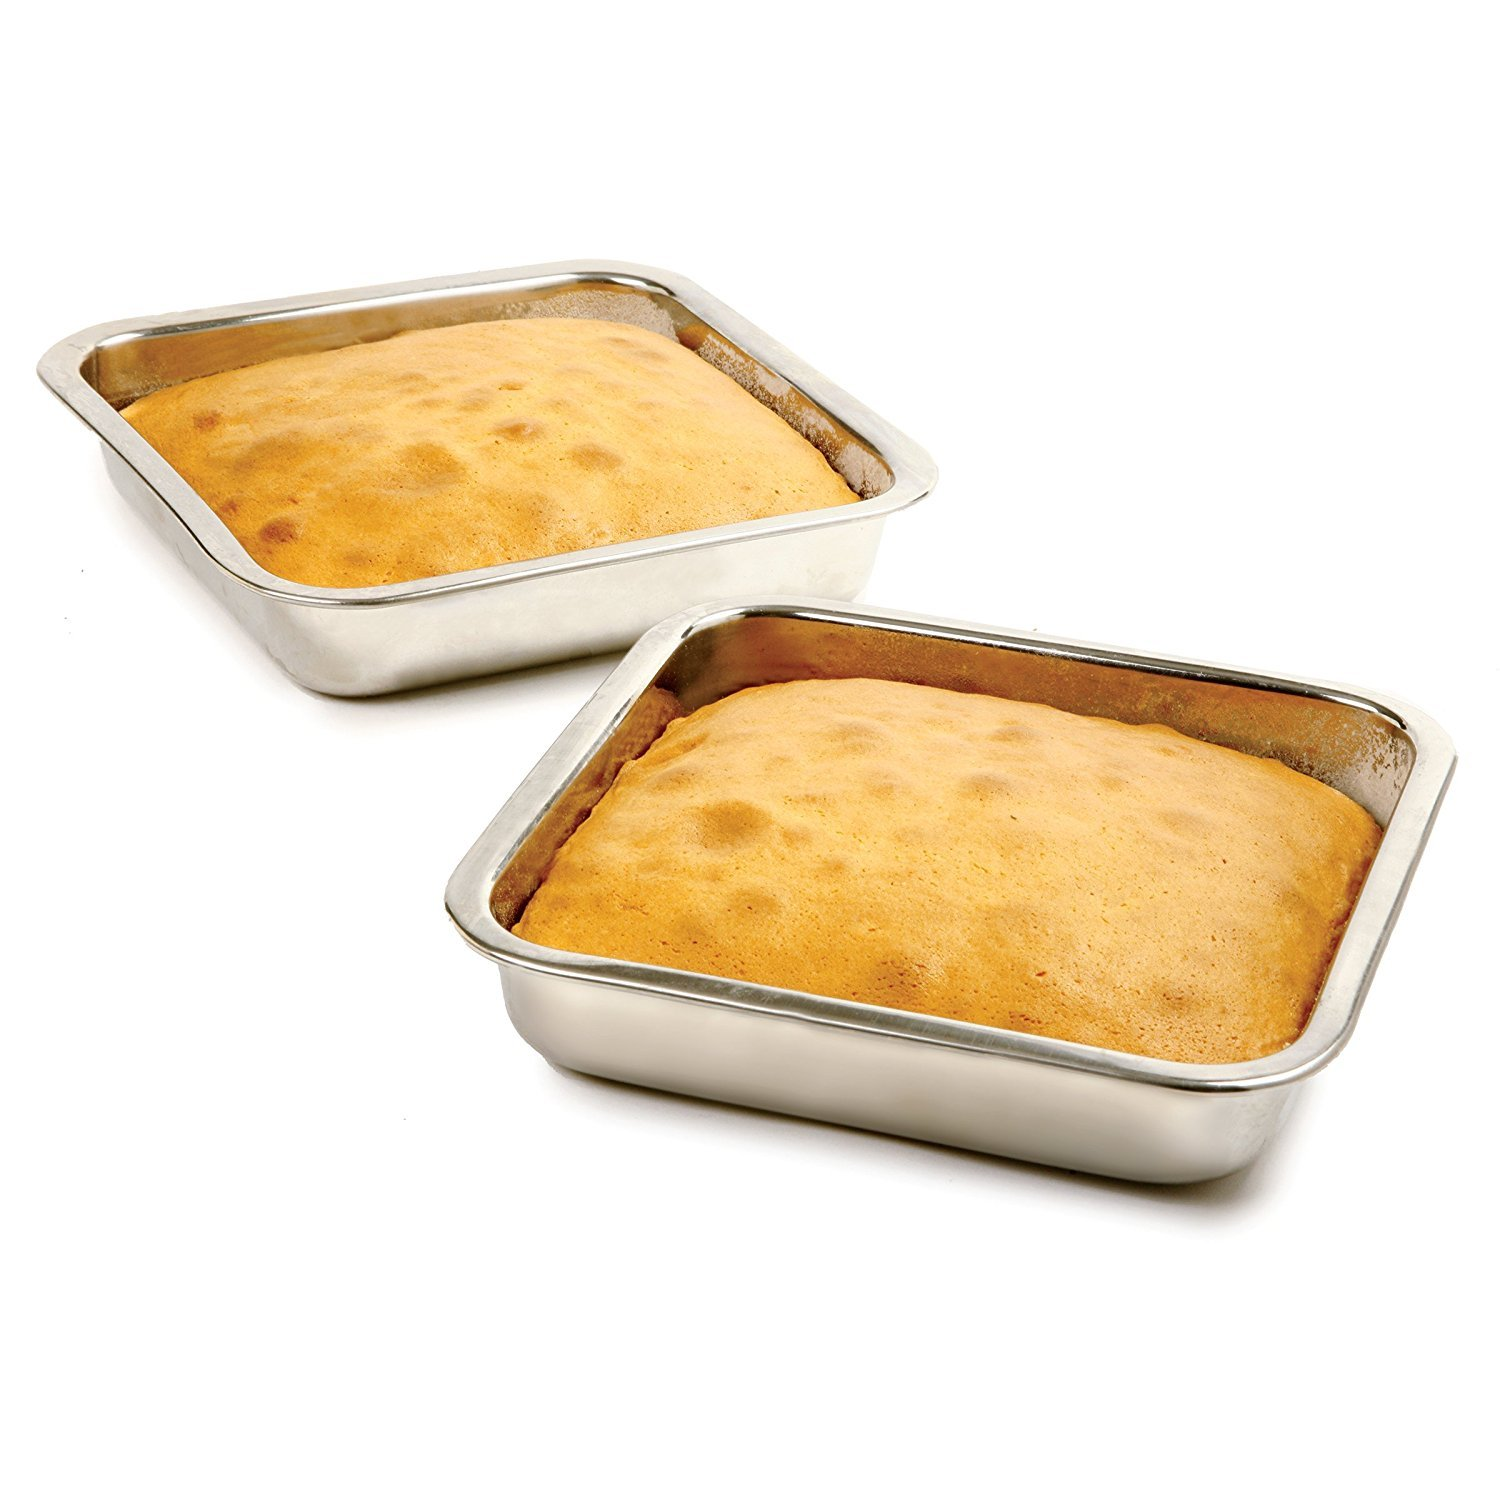 Norpro 7.5-Inch Stainless Steel Cake Pan, Square(2PK) by Norpro (Image #2)